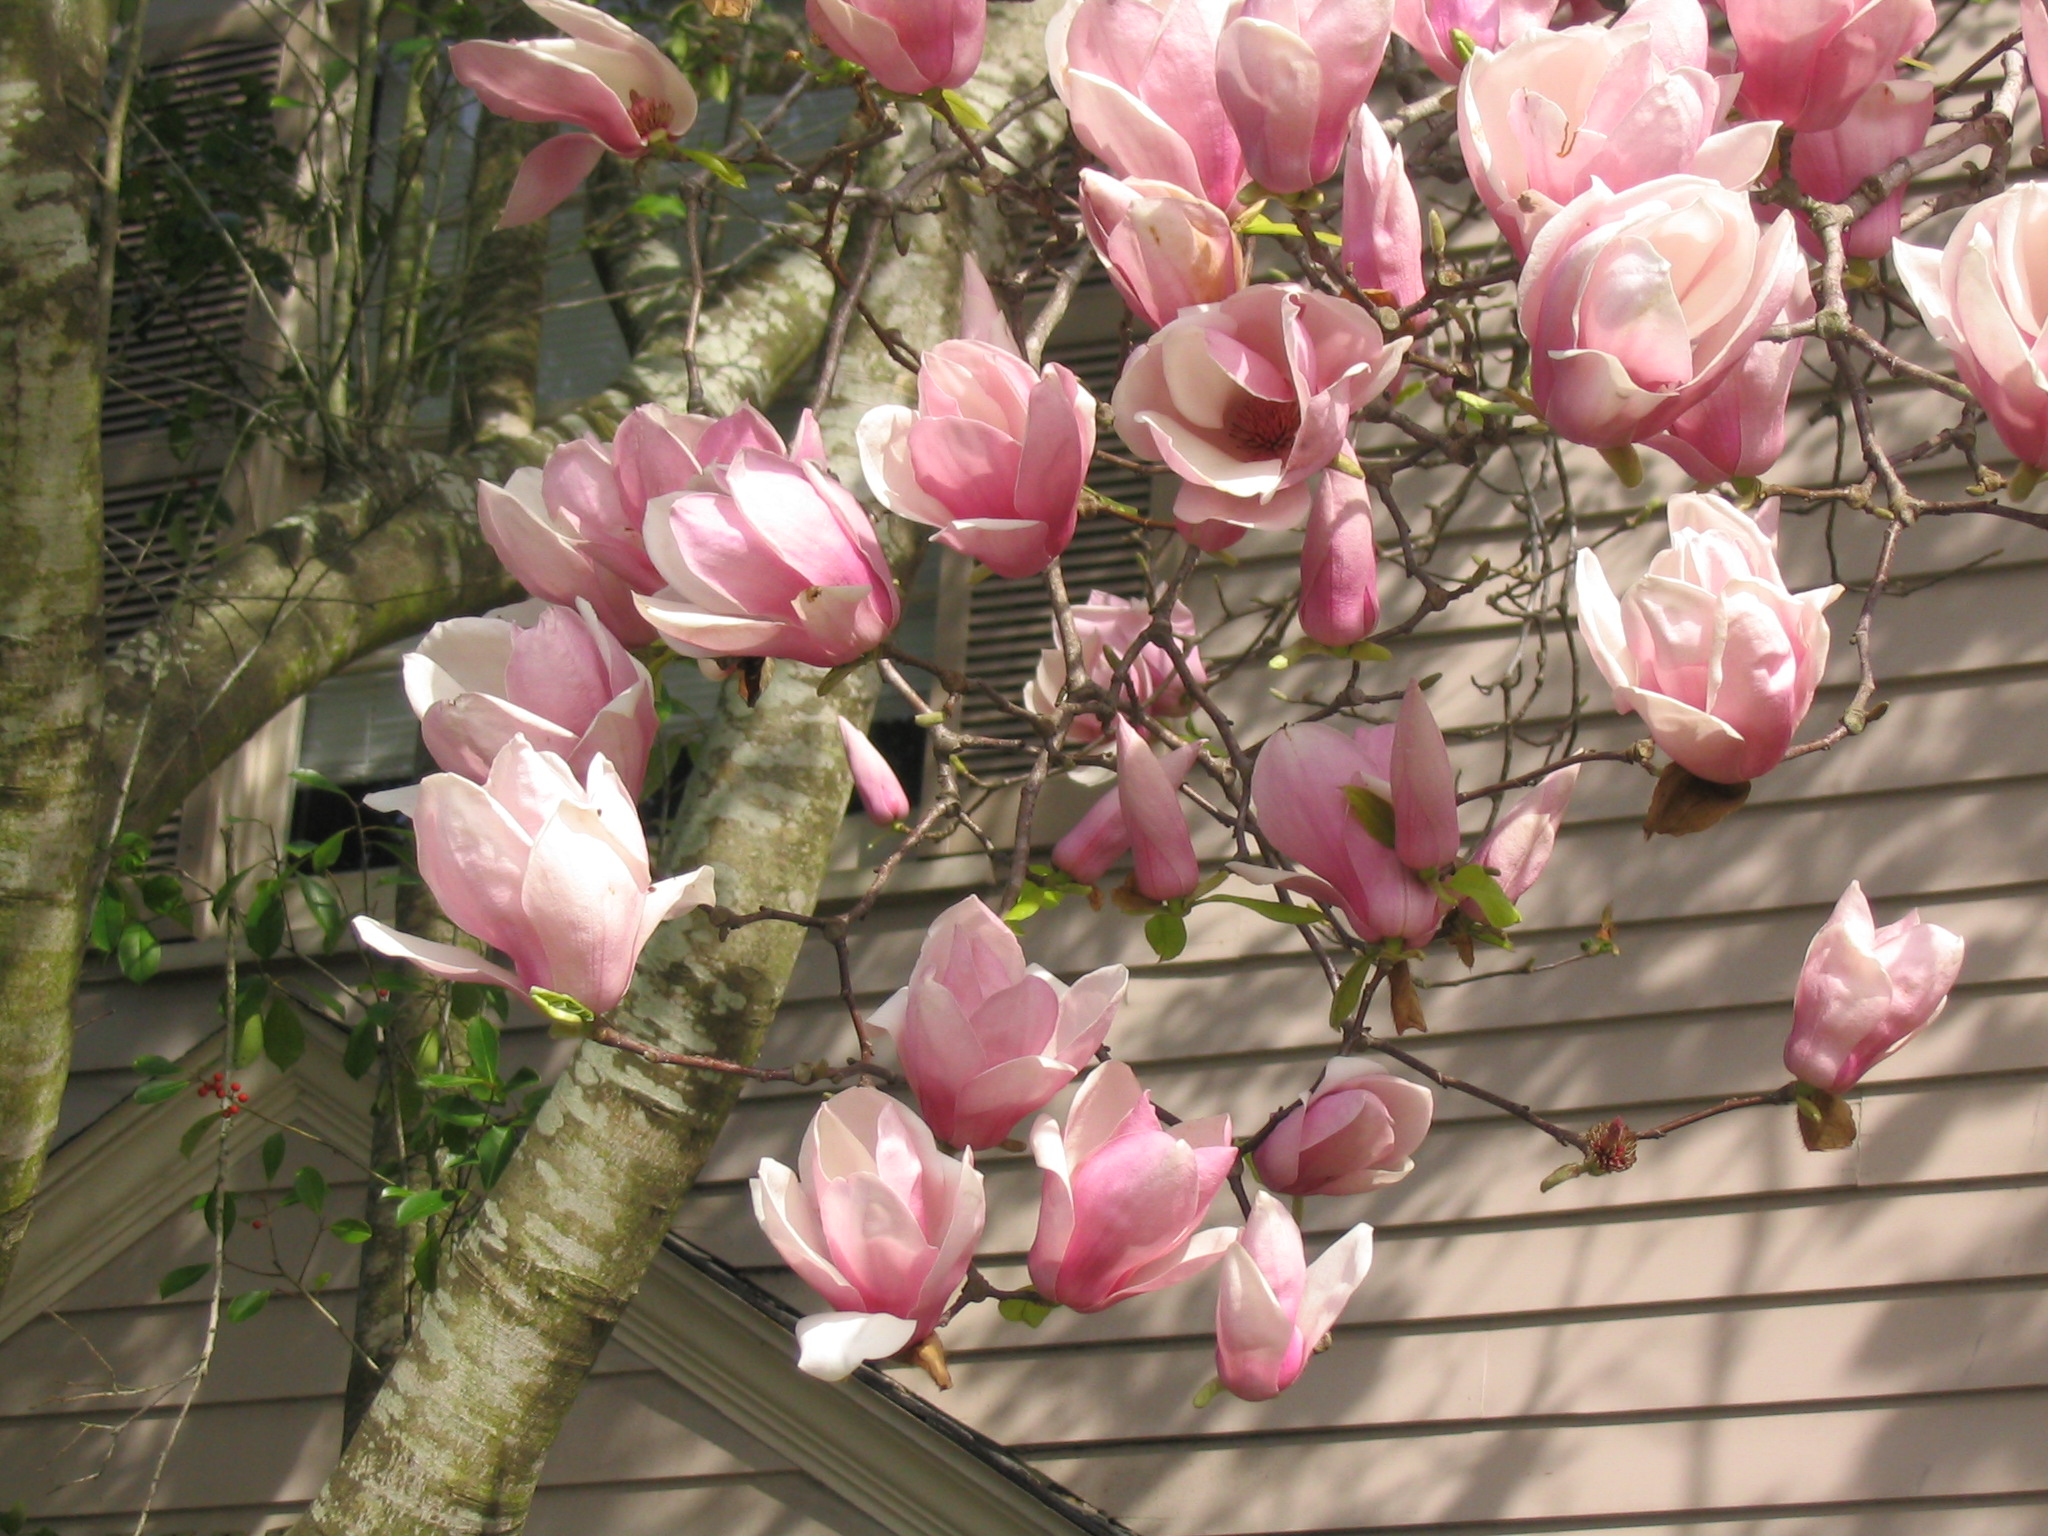 Japanese magnolias provide late-winter color